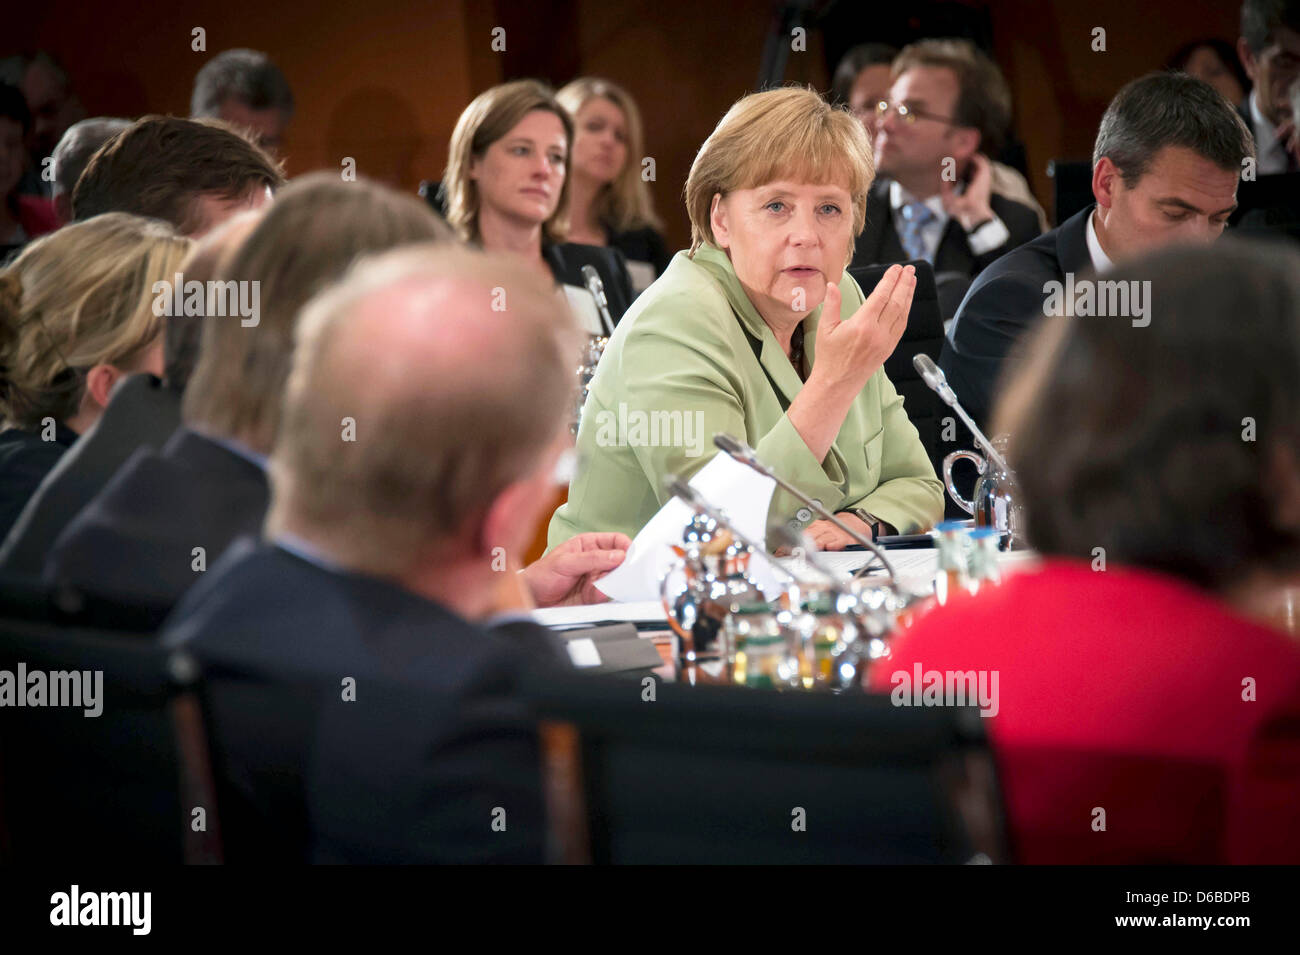 German Chancellor Angela Merkel (C) discusses the results of the work groups with experts discussing the future - Stock Image